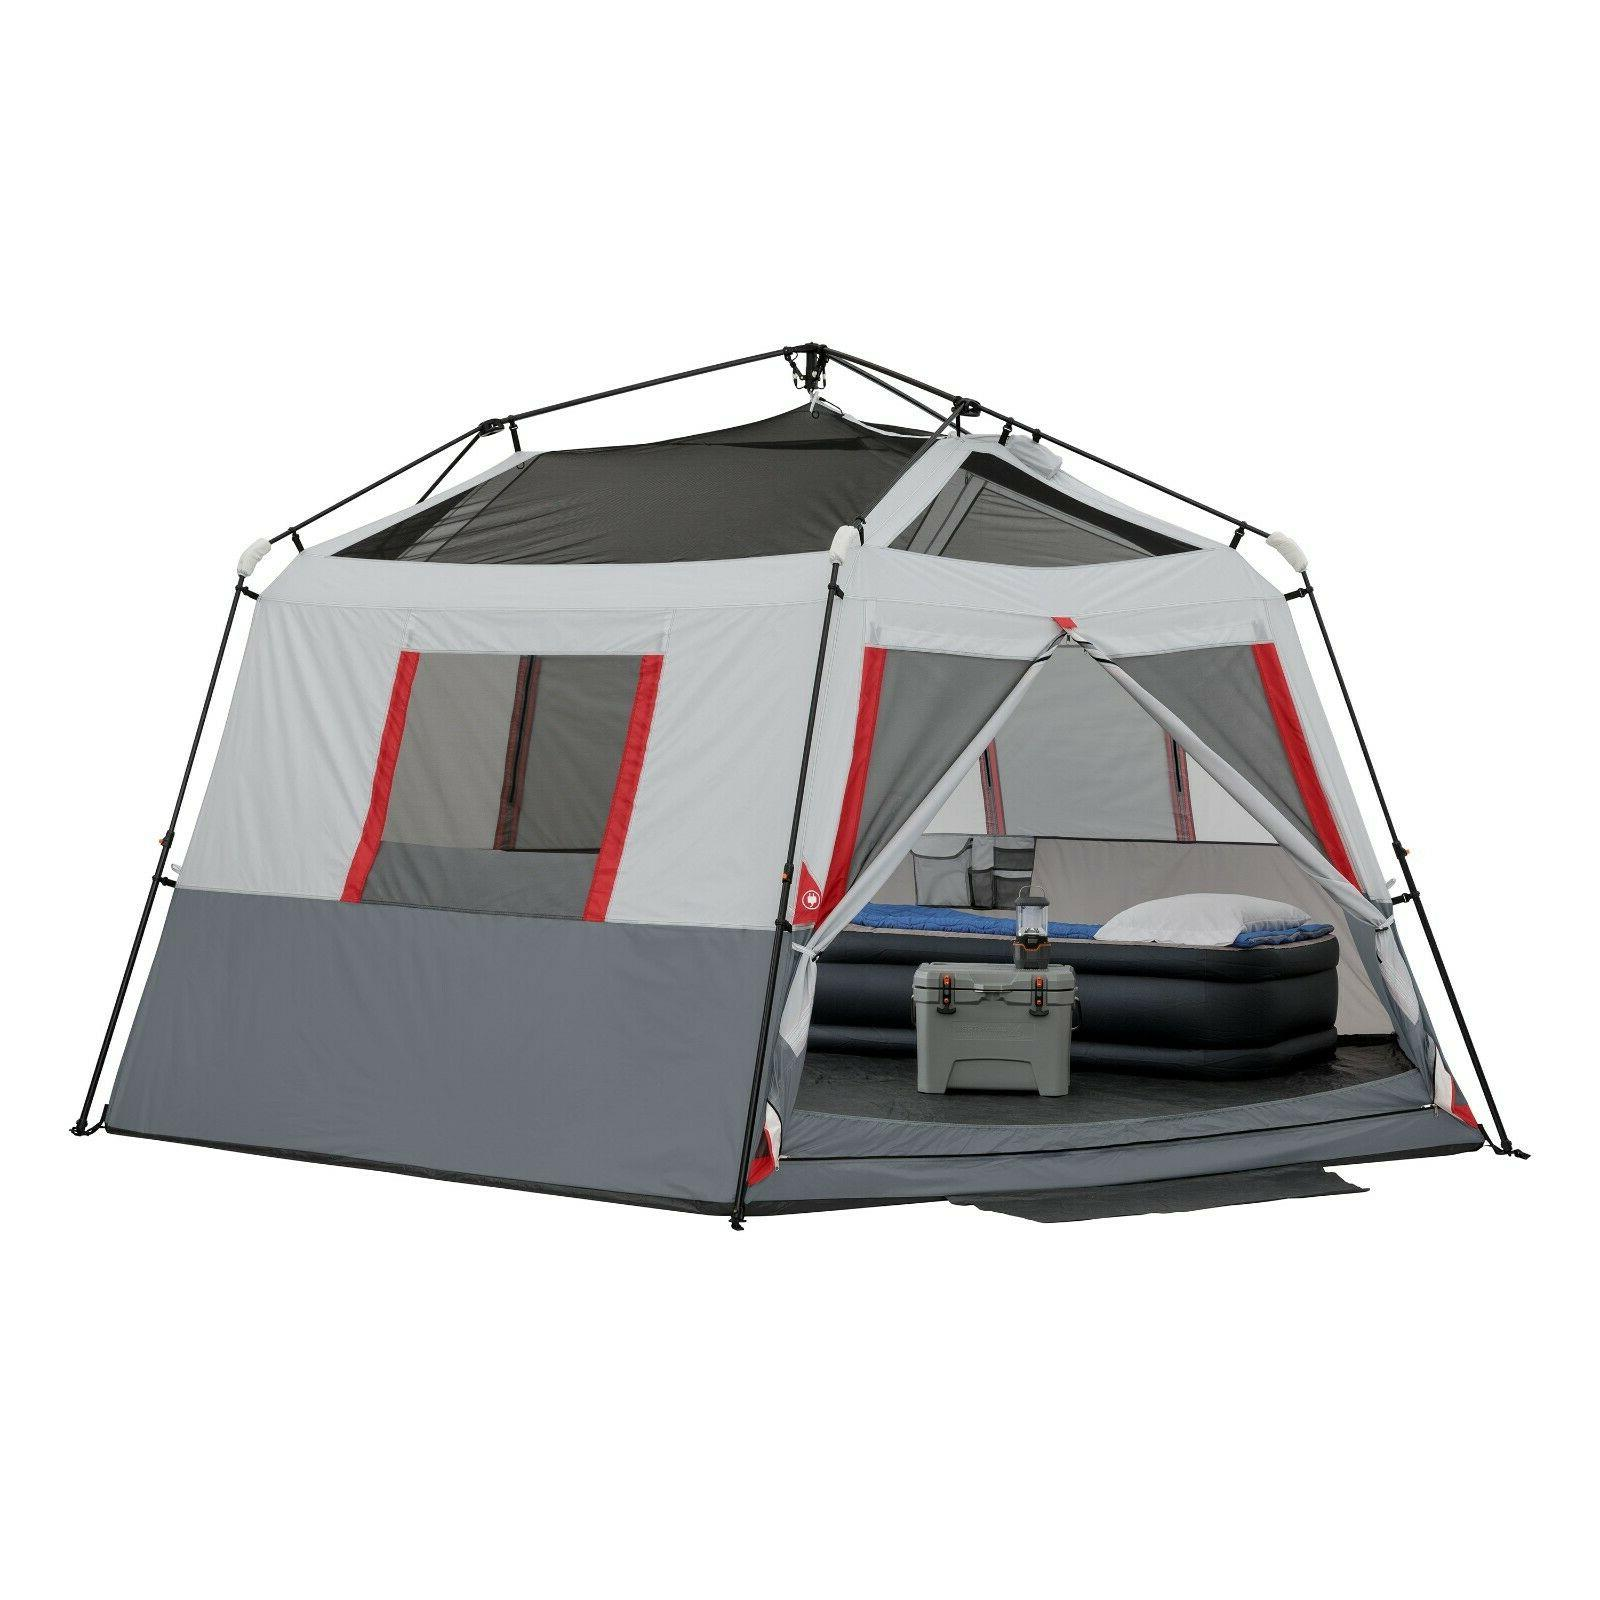 Ozark Trail 8 Person Instant Hexagon Tent With Led